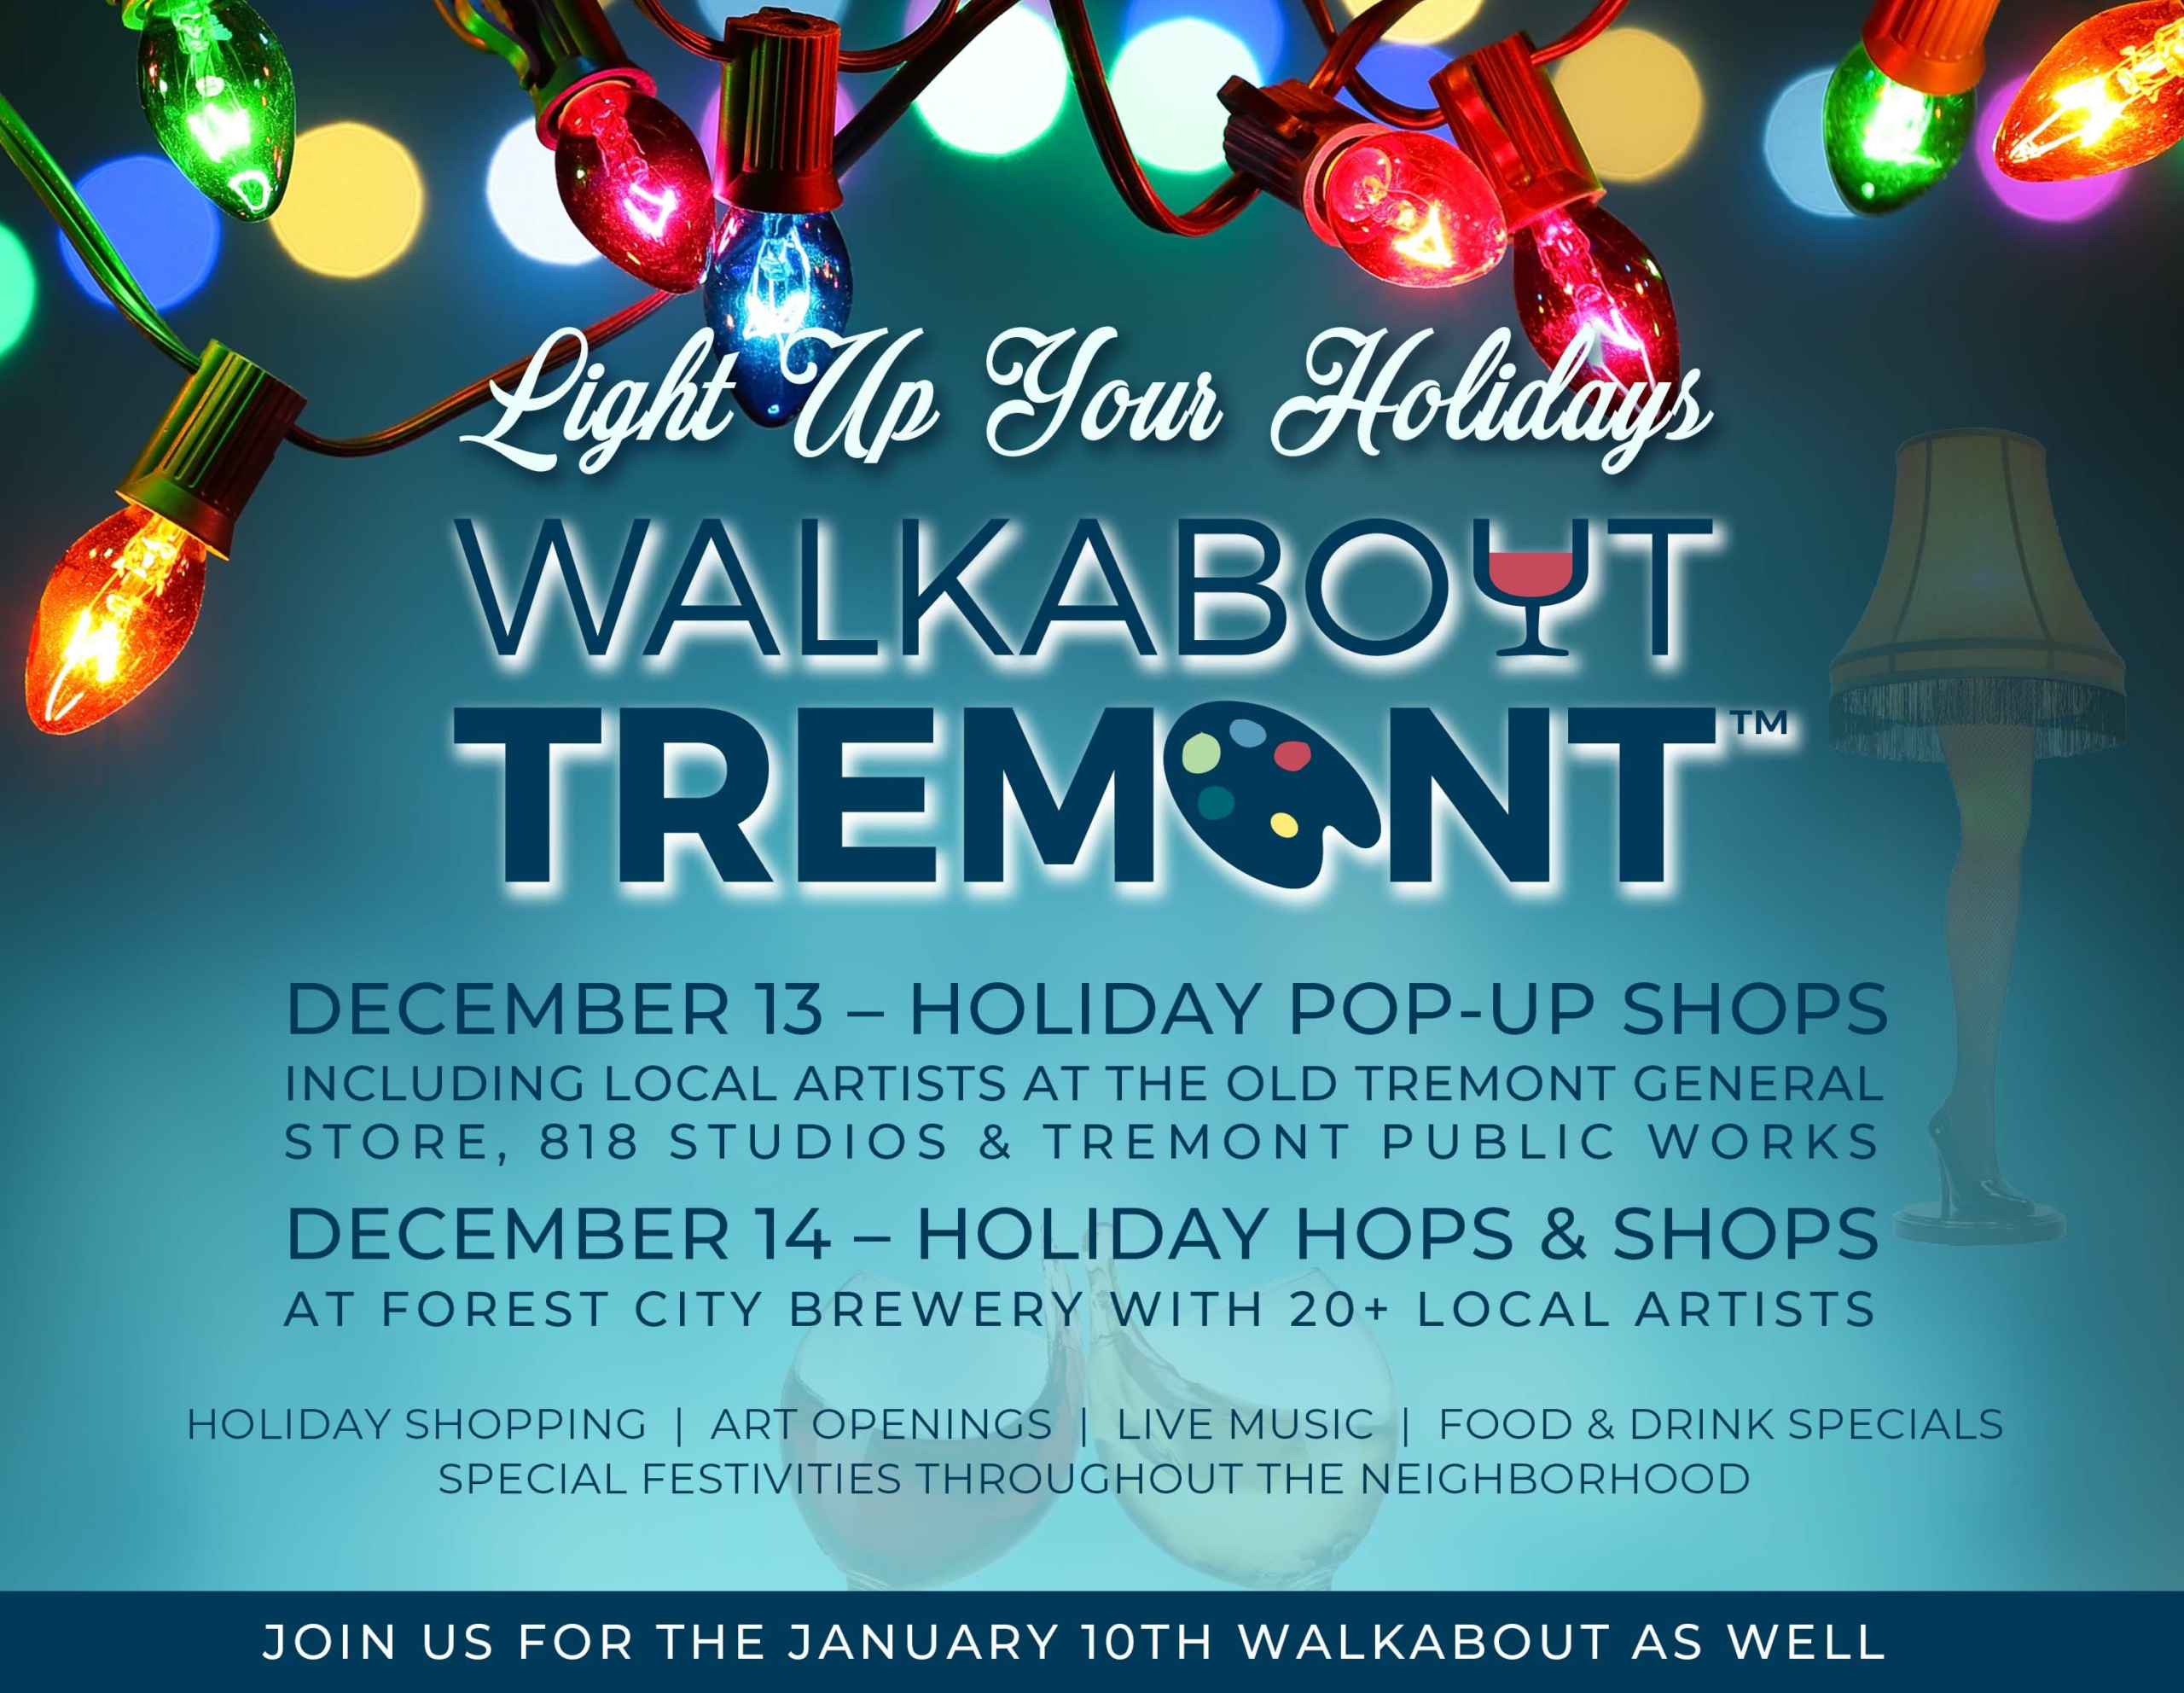 WALKABOUT TREMONT HOSTS NEIGHBORHOOD-WIDE POP-UP SHOPS TO LIGHT UP THE HOLIDAYS